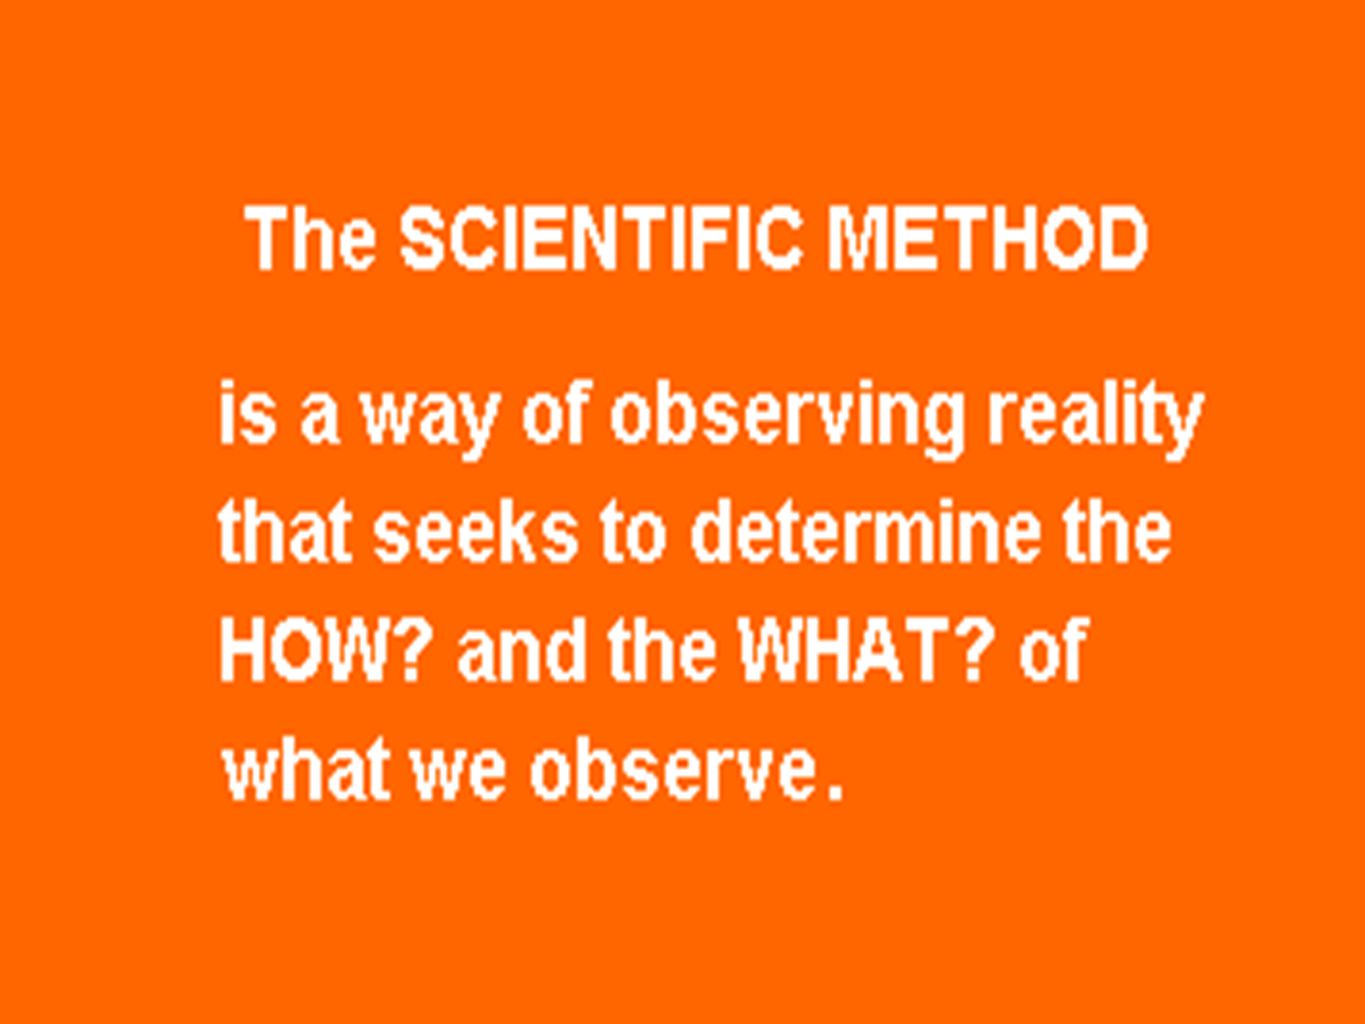 The advantages of the scientific method in the search 1-The prompt investigation behind the real causes of the events and phenomena.